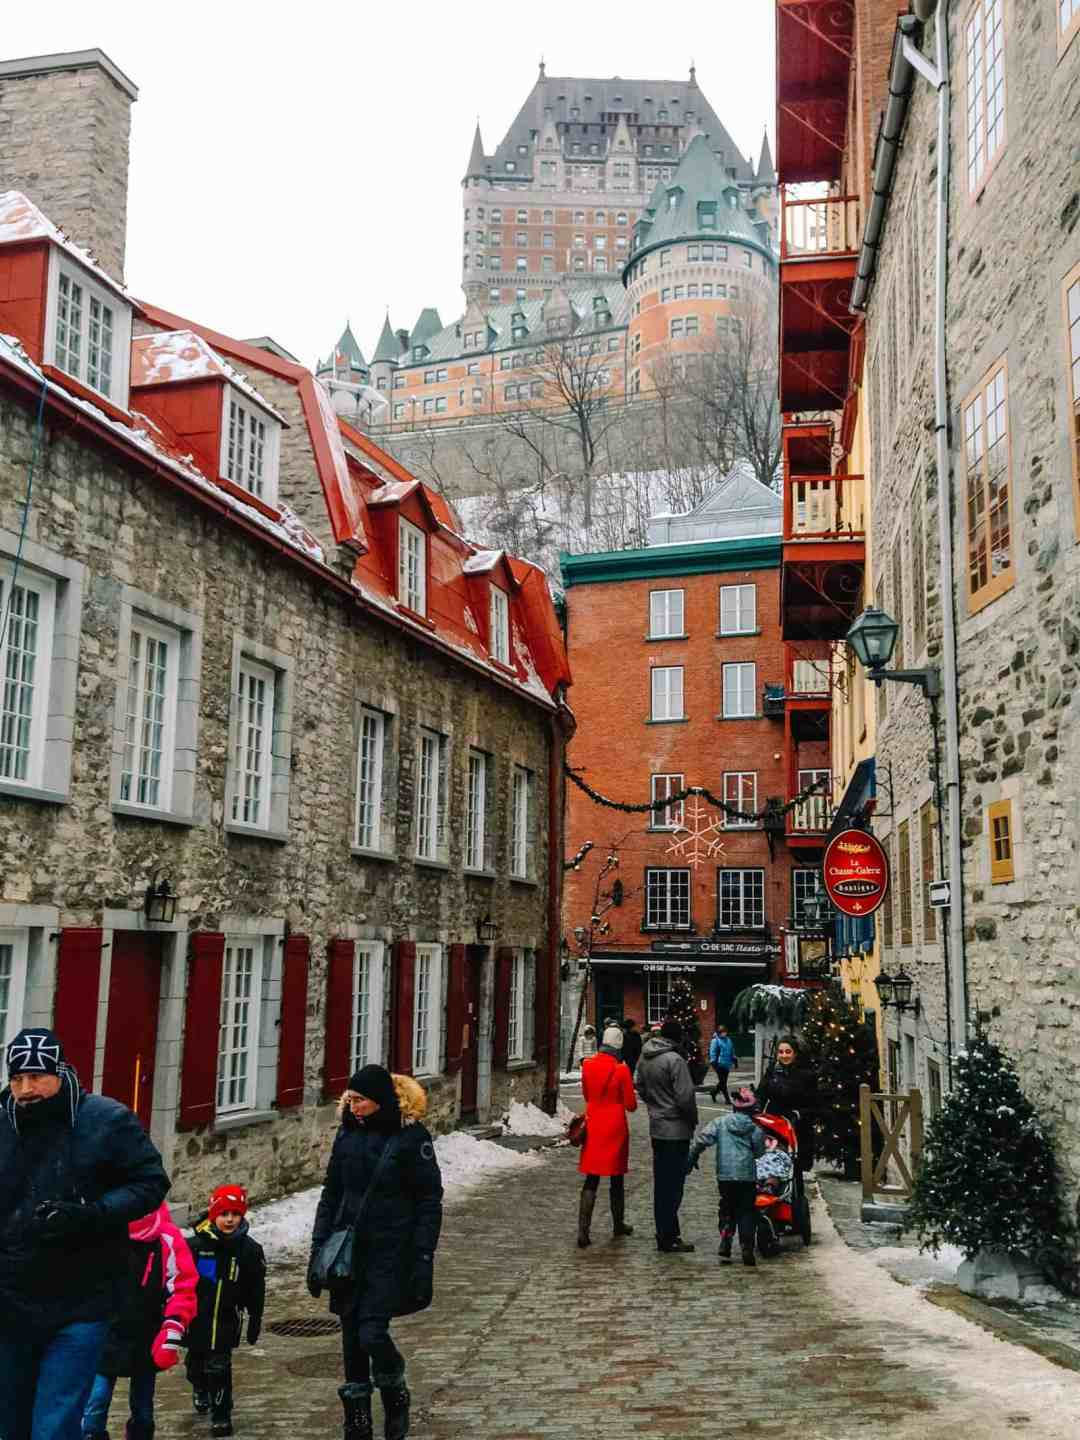 Spend a magical Christmas in Quebec City! This is your ultimate guide for what to do, what to eat, and how to celebrate. #quebeccity #quebecchristmas